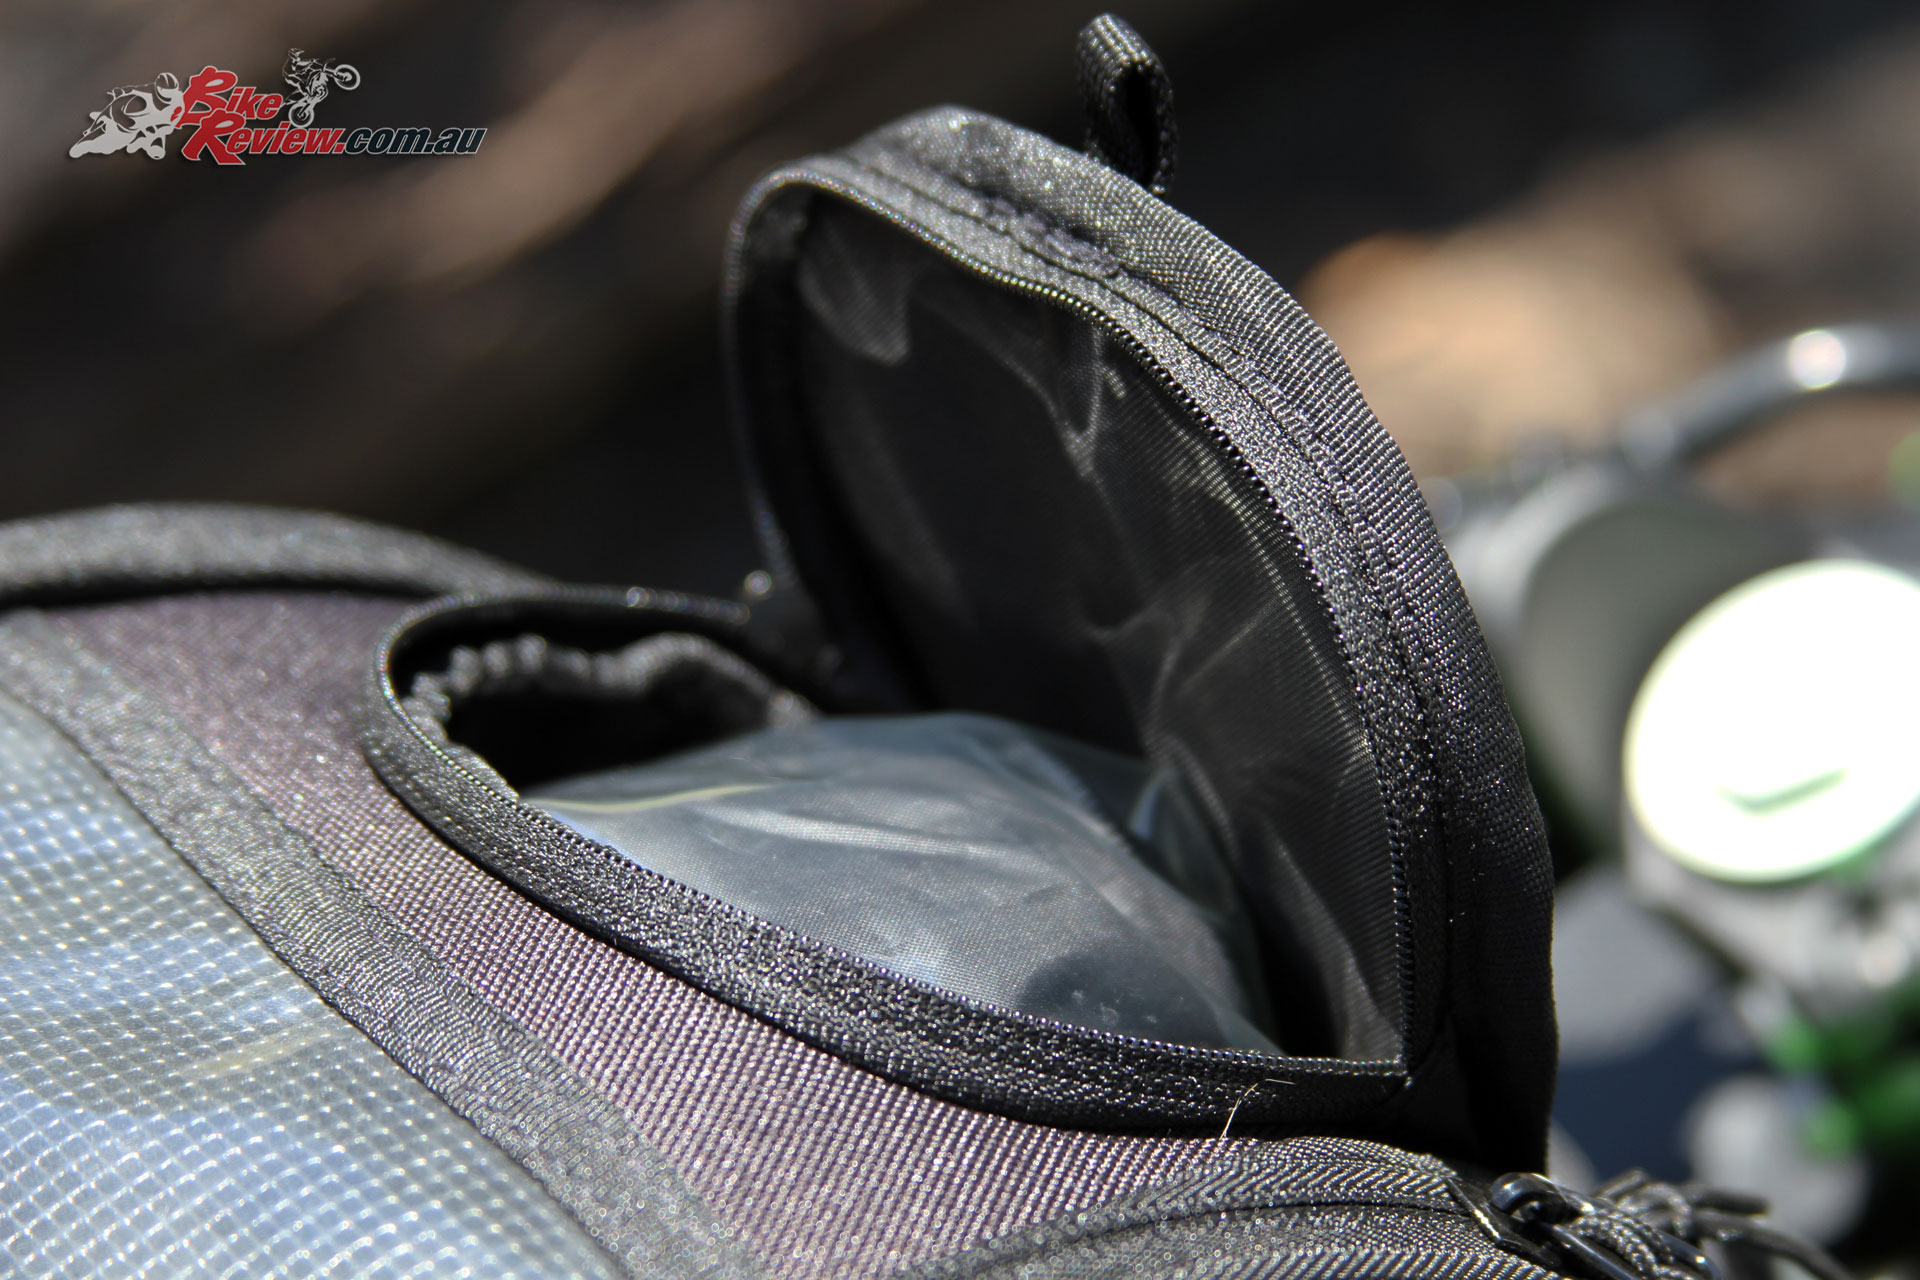 Kawasaki Genuine Tank Bag - A waterproof cover is also included with its own pouch